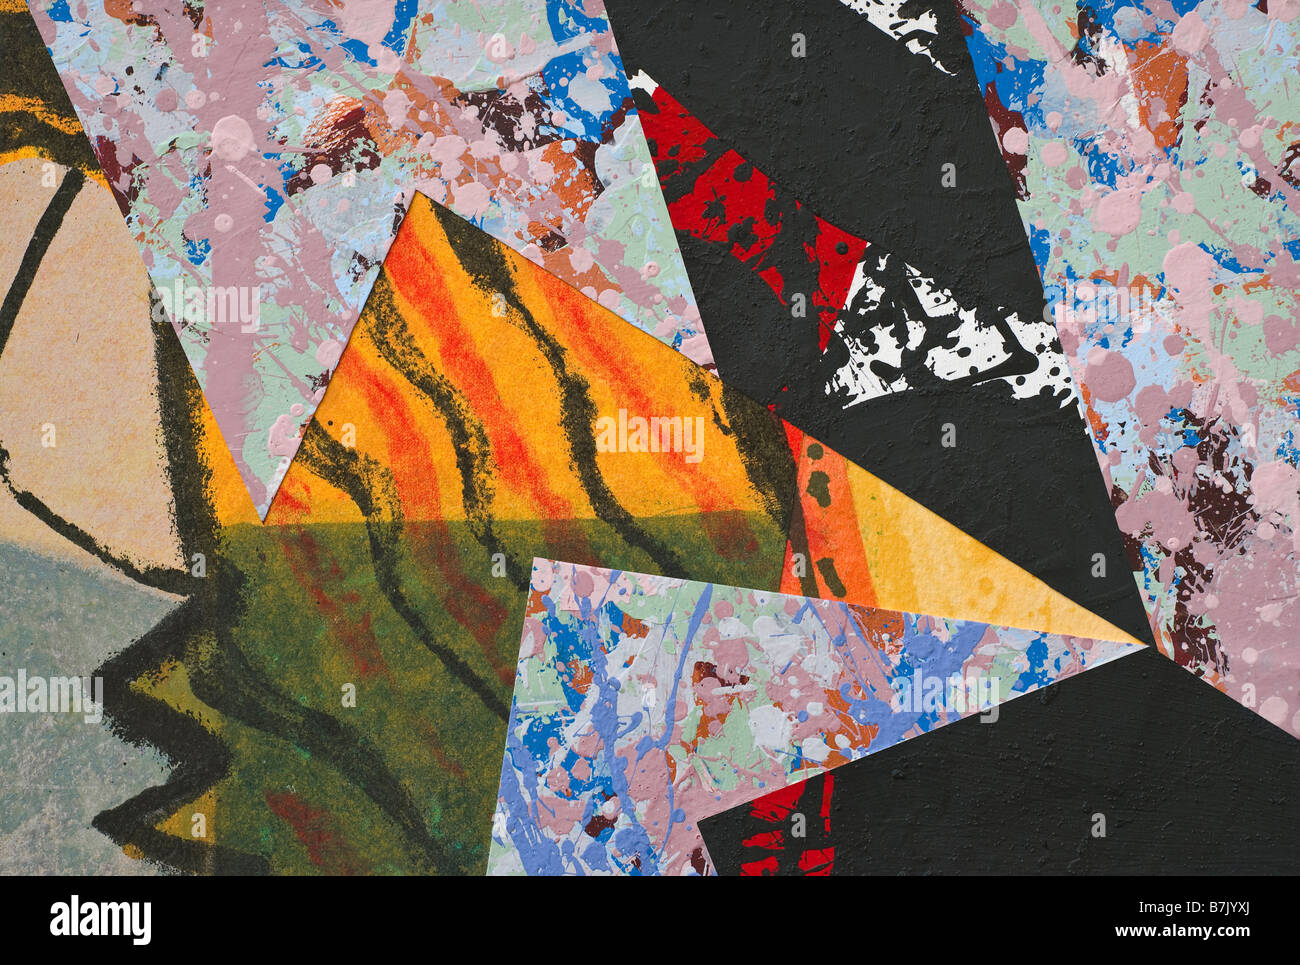 Hand Painted Paper Collage as Design Element - Stock Image